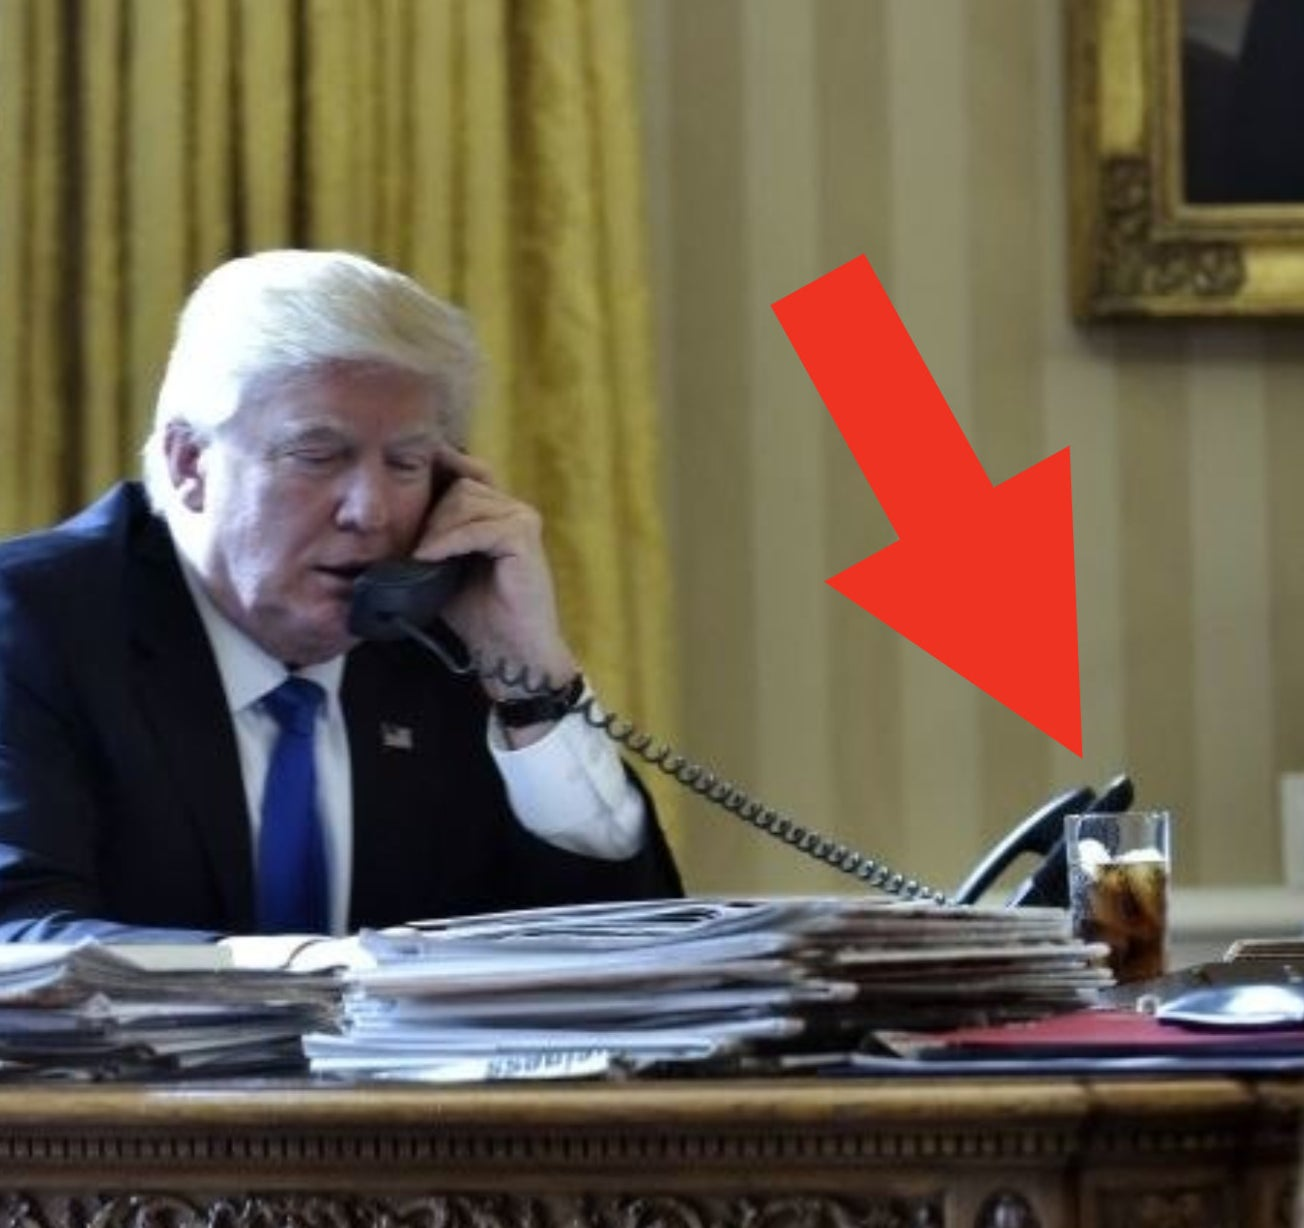 Trump on the phone with a tall glass of Diet Coke on his desk next to stacks of papers